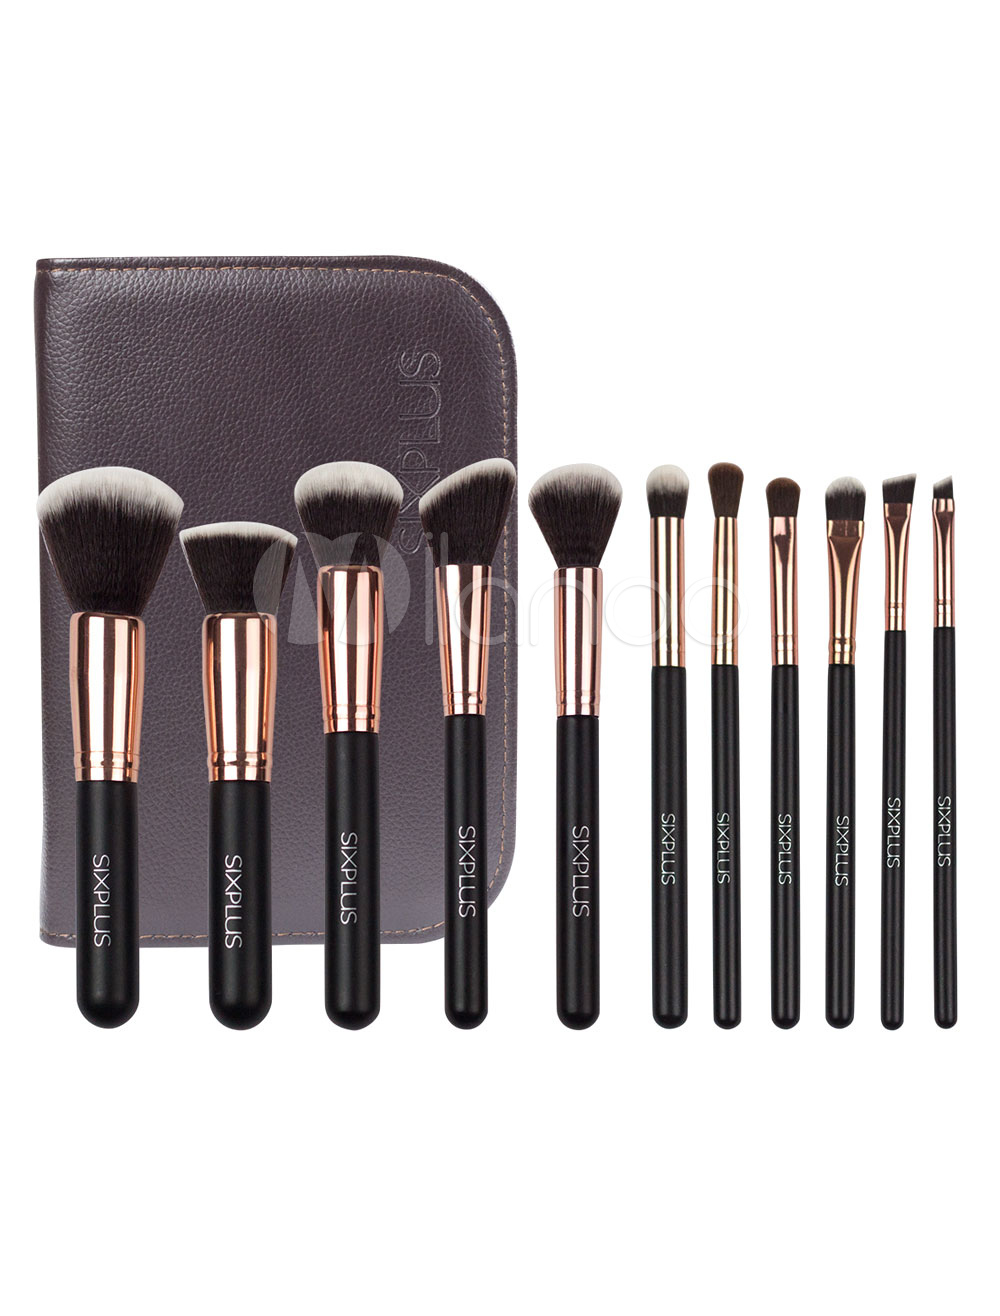 Rose Gold Soft Synthetic Makeup Brushes Set In 11 Pcs Cheap clothes, free shipping worldwide